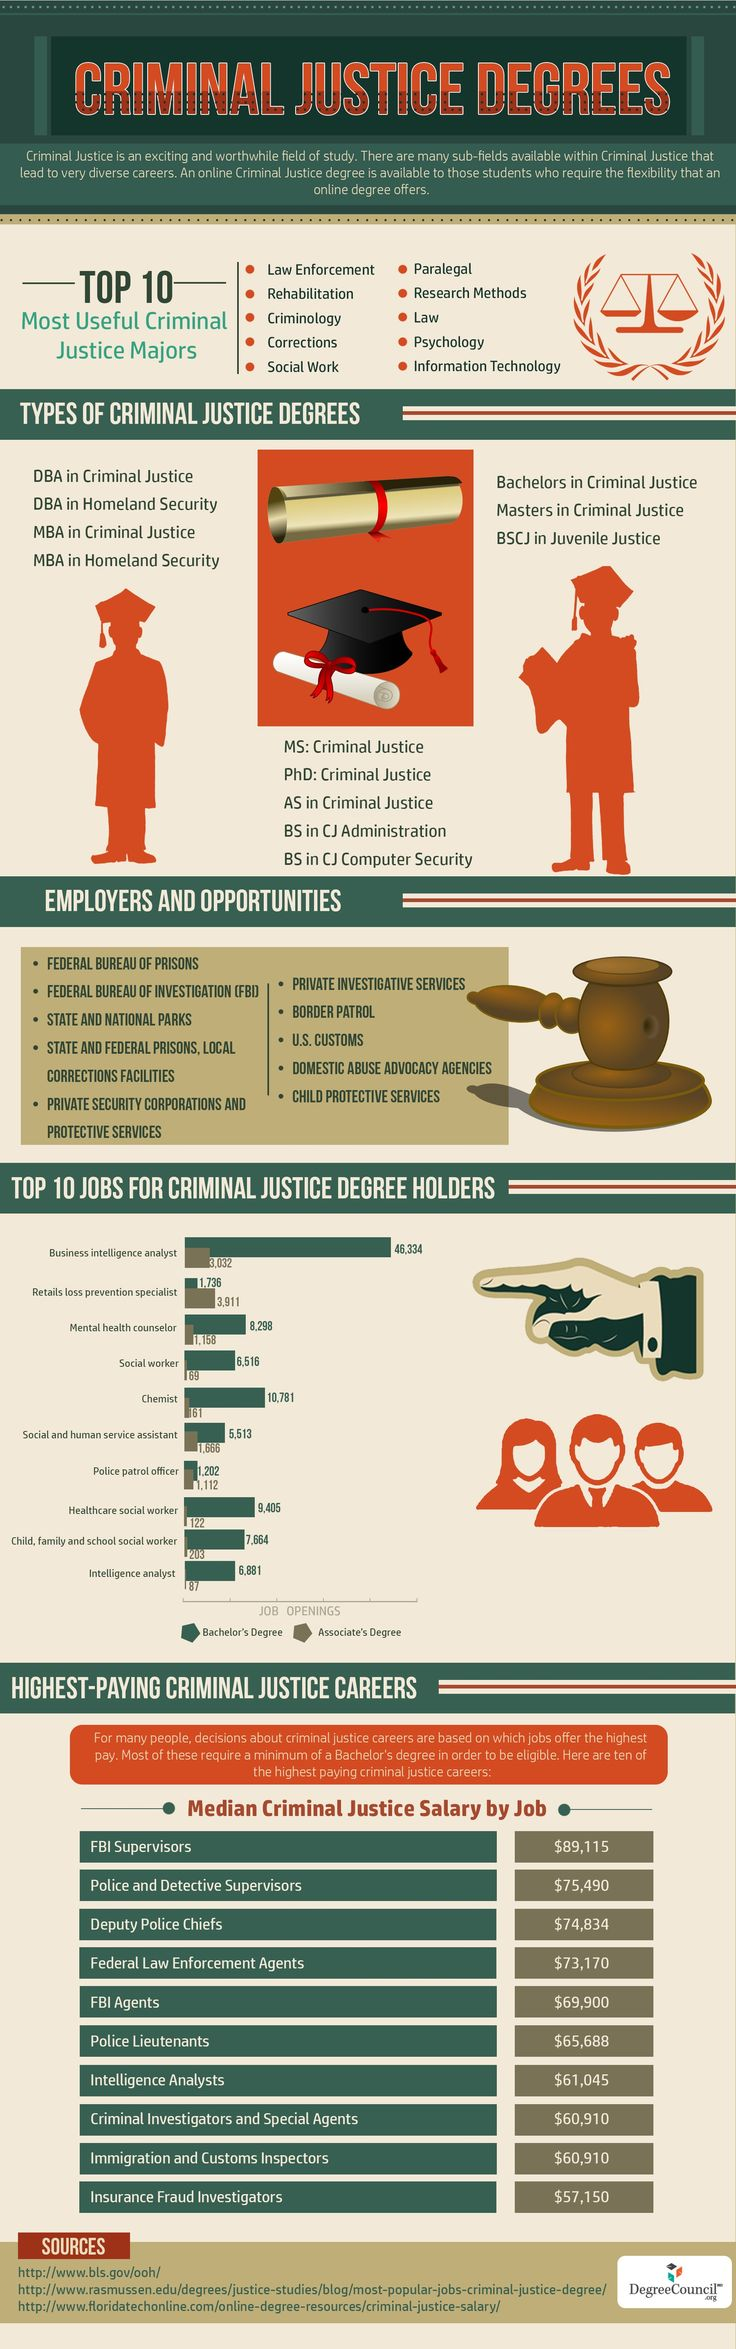 Criminal Justice Degrees    #infographic #CriminalJustice #Career